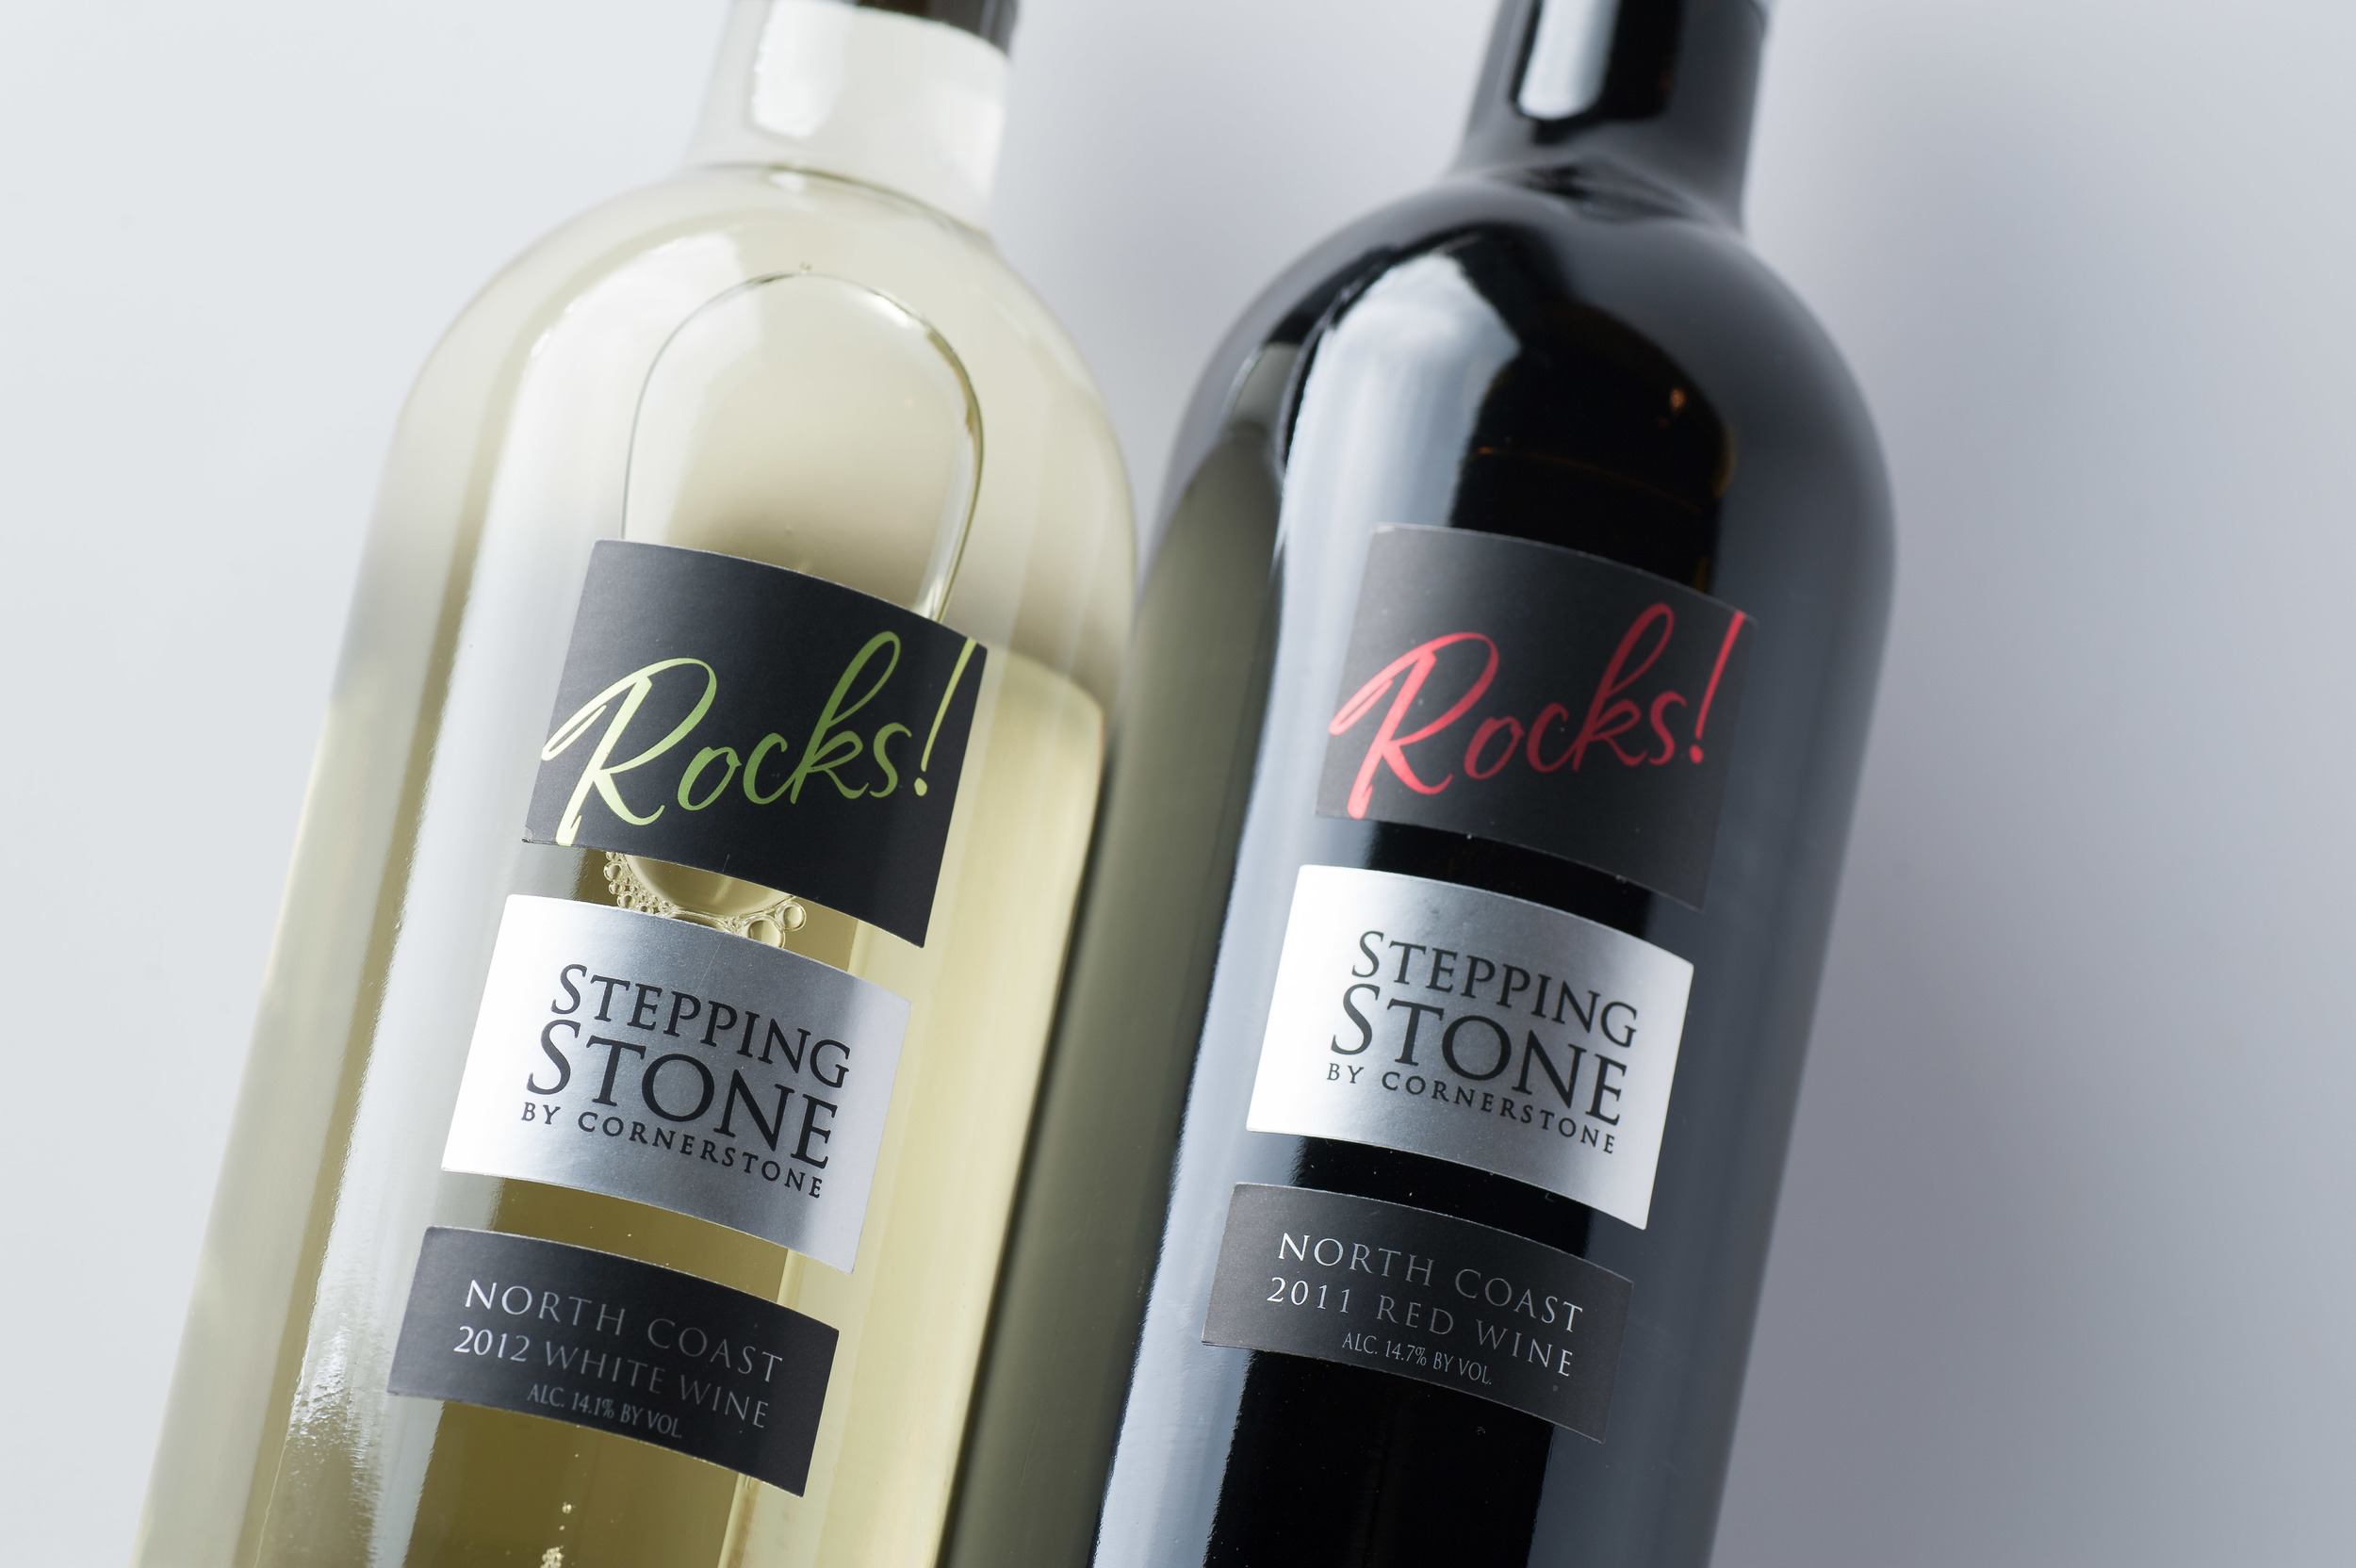 2012 Stepping Stone by Cornerstone North Coast White Rocks! and 2011 Stepping Stone by Cornerstone North Coast Red Rocks!